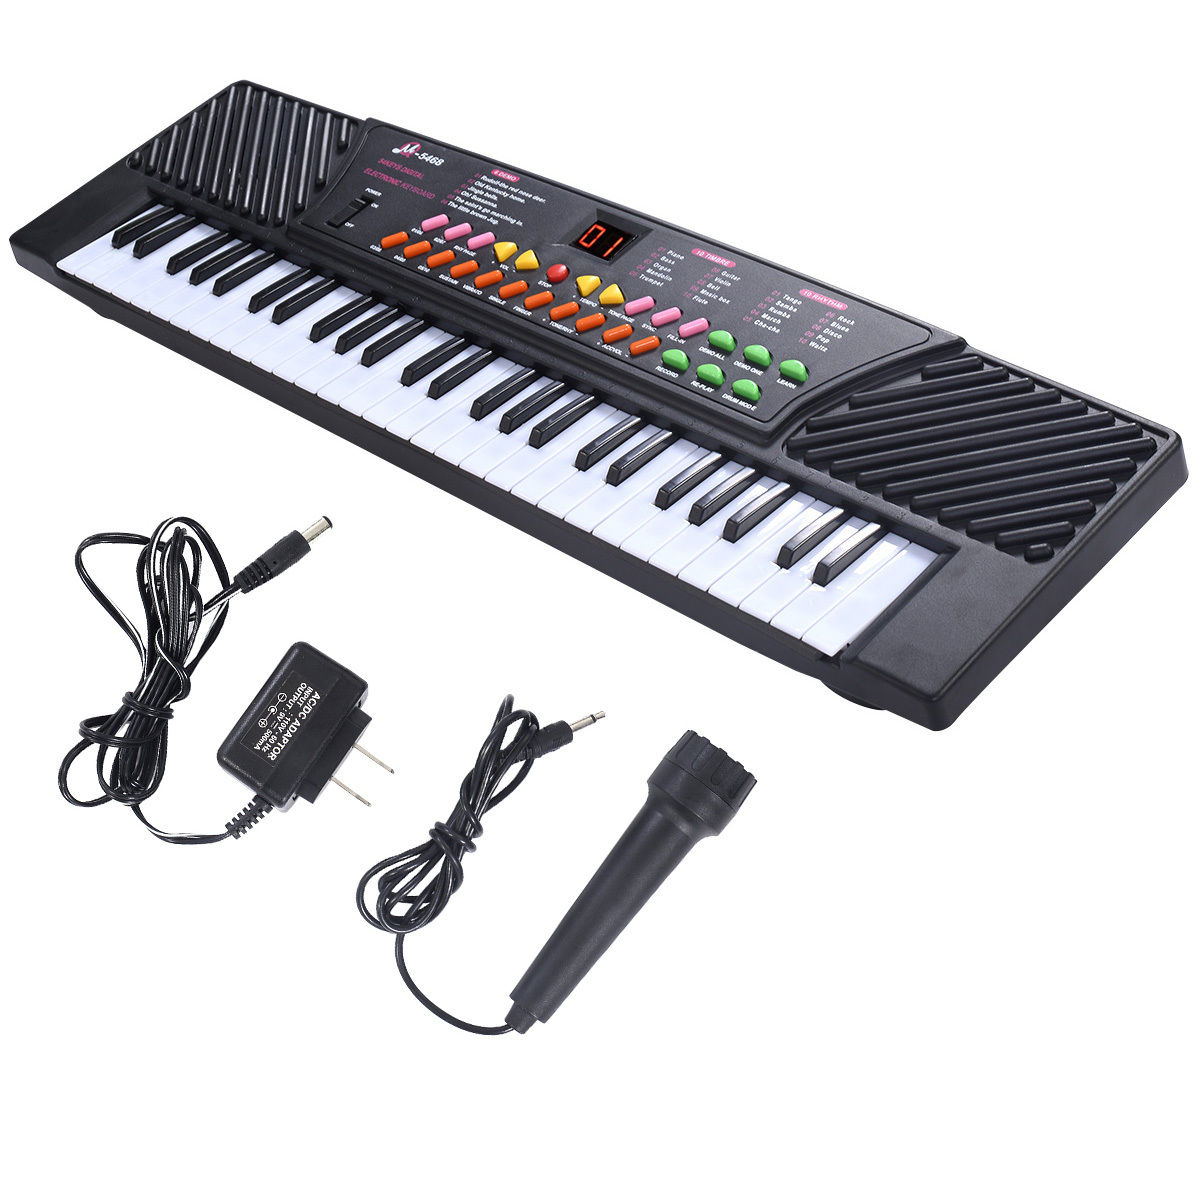 Costway 54 Keys Music Electronic Keyboard Kid Electric Piano Organ W Mic & Adapter by Costway